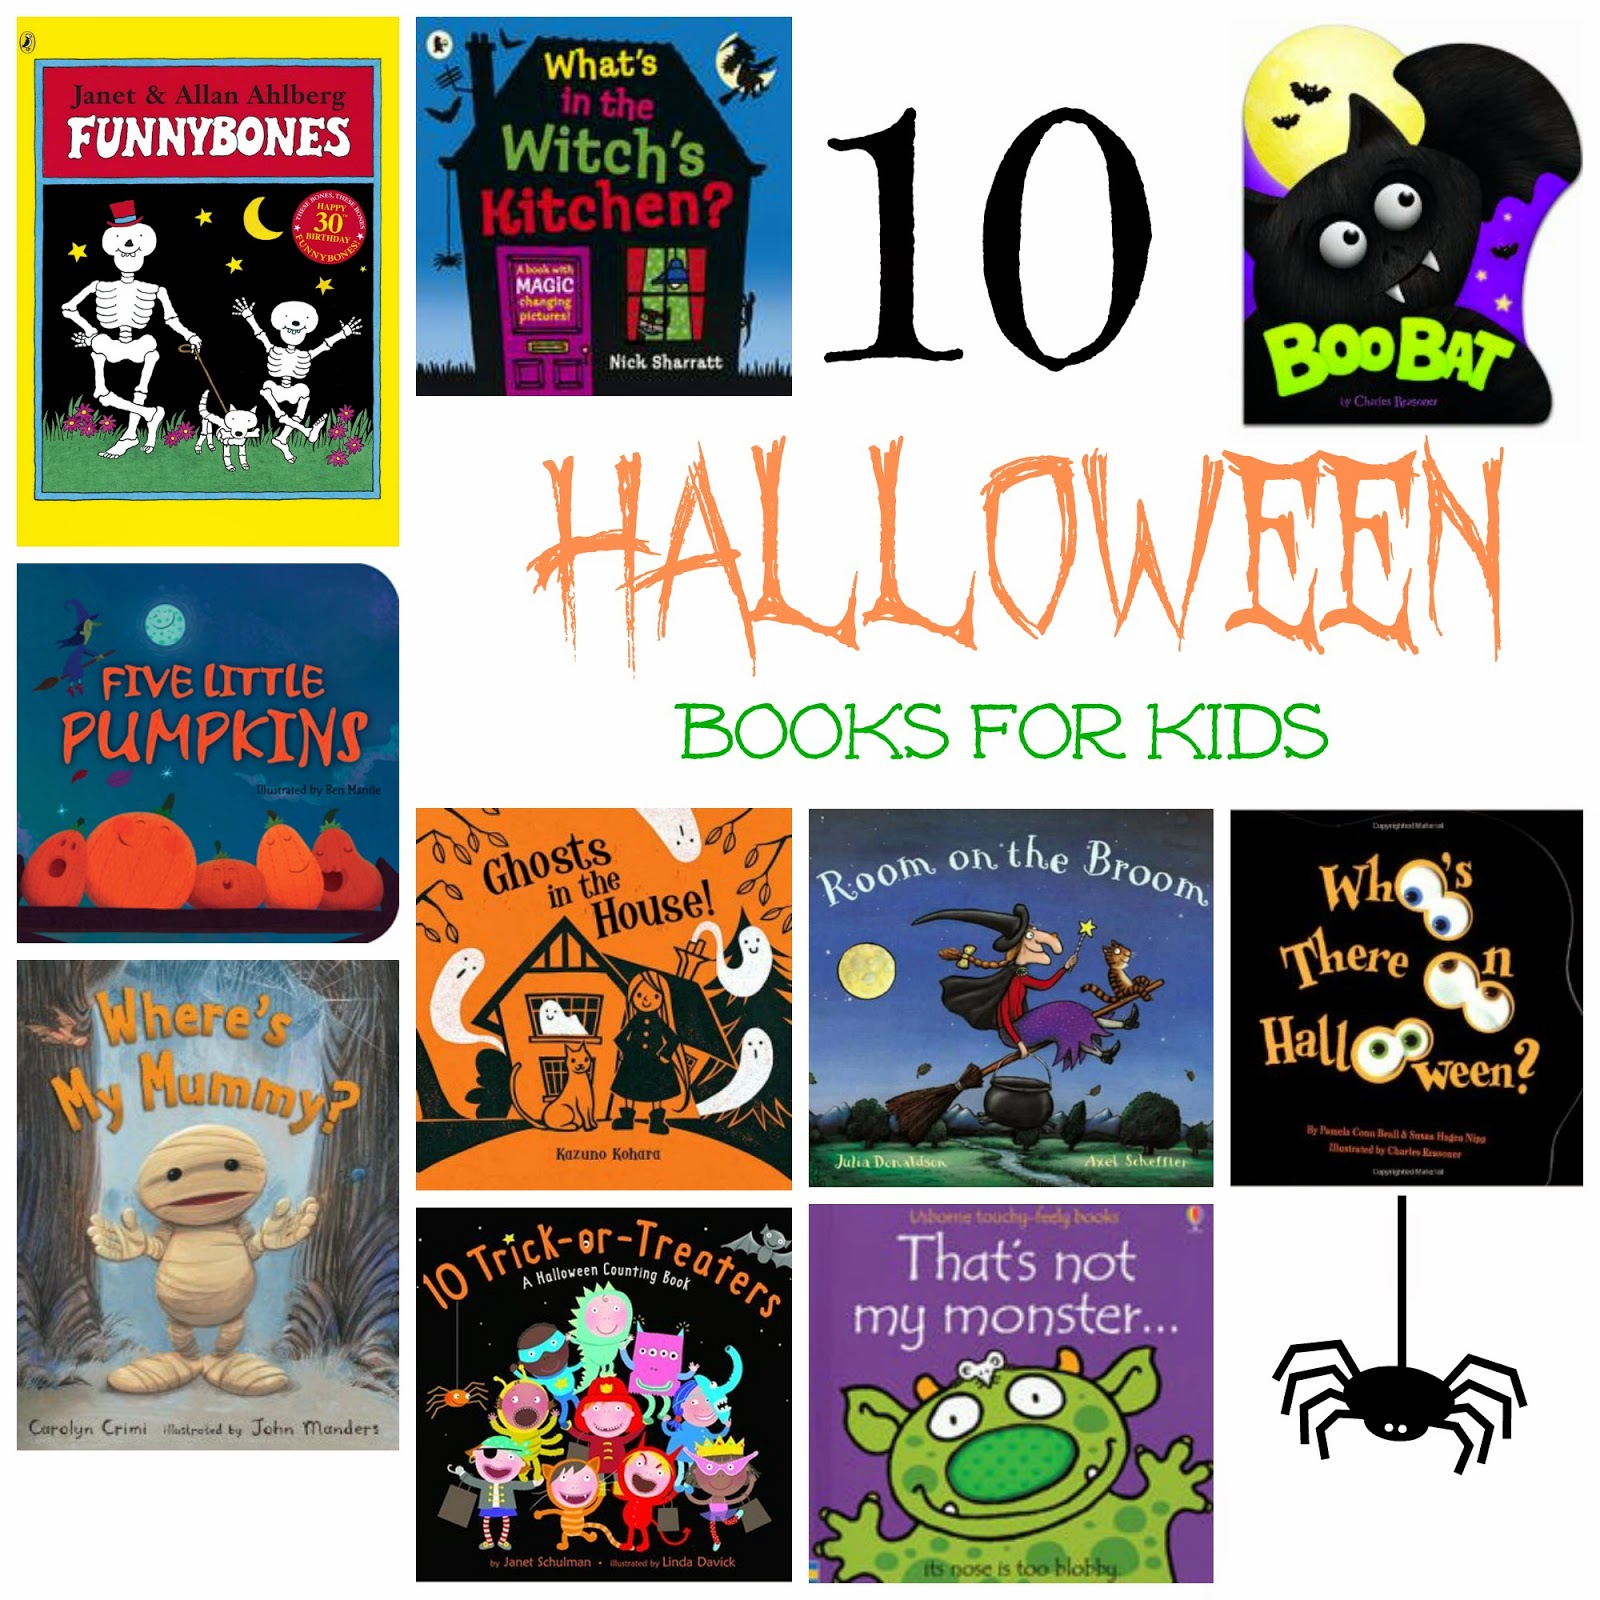 10 Spook-tacular Halloween books for kids | sunday night book club | halloween books for kids | book club | mamasVIB| Halloween stories | trick or treat book for kids | storybooks for kids | halloween books | kids book club | mamasvib sunday night bookclub|